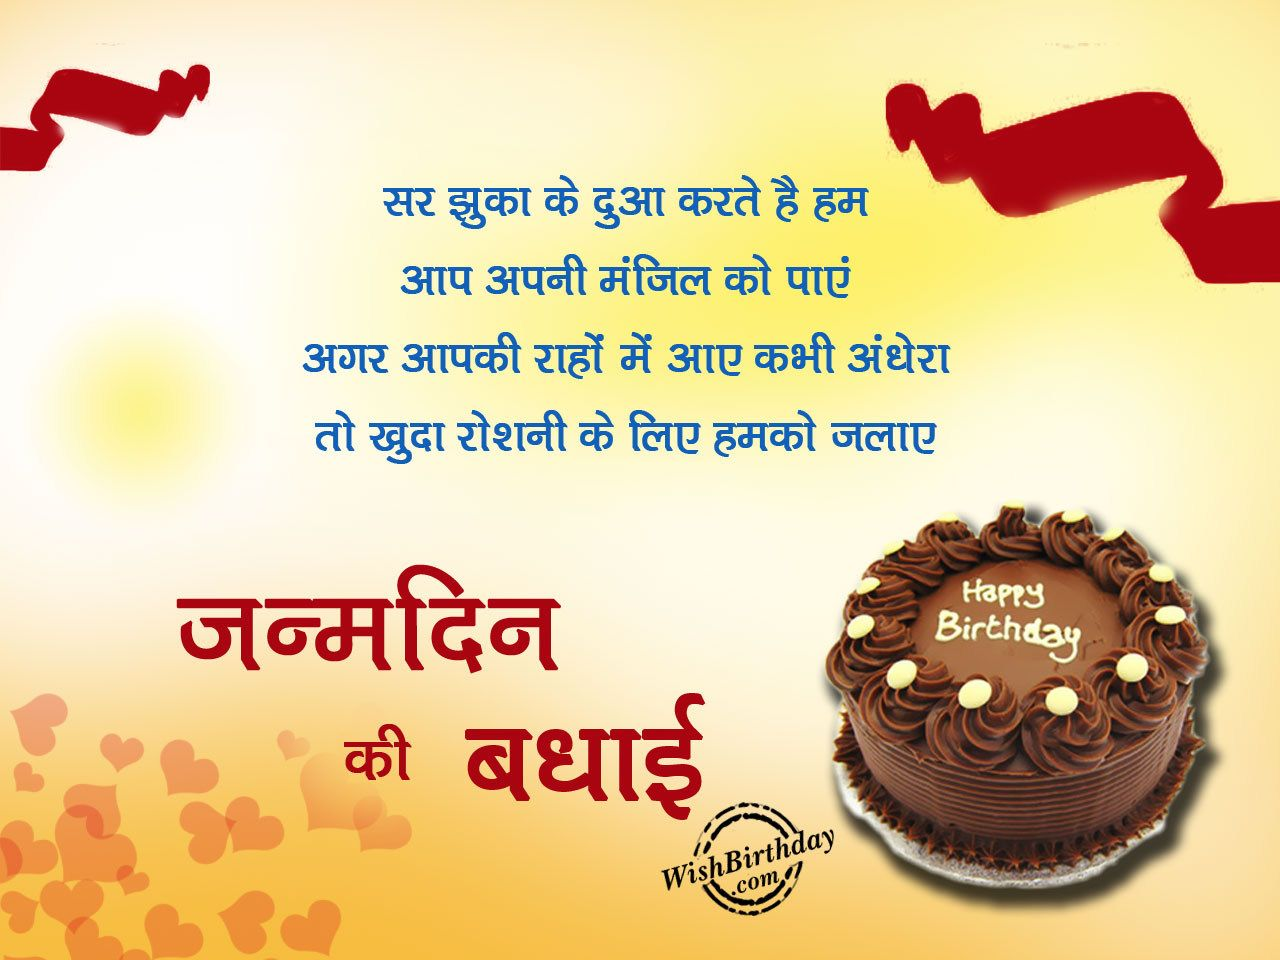 birthday wish for hubby in hindi ; 5ce08422056655d557dfce89977612b9